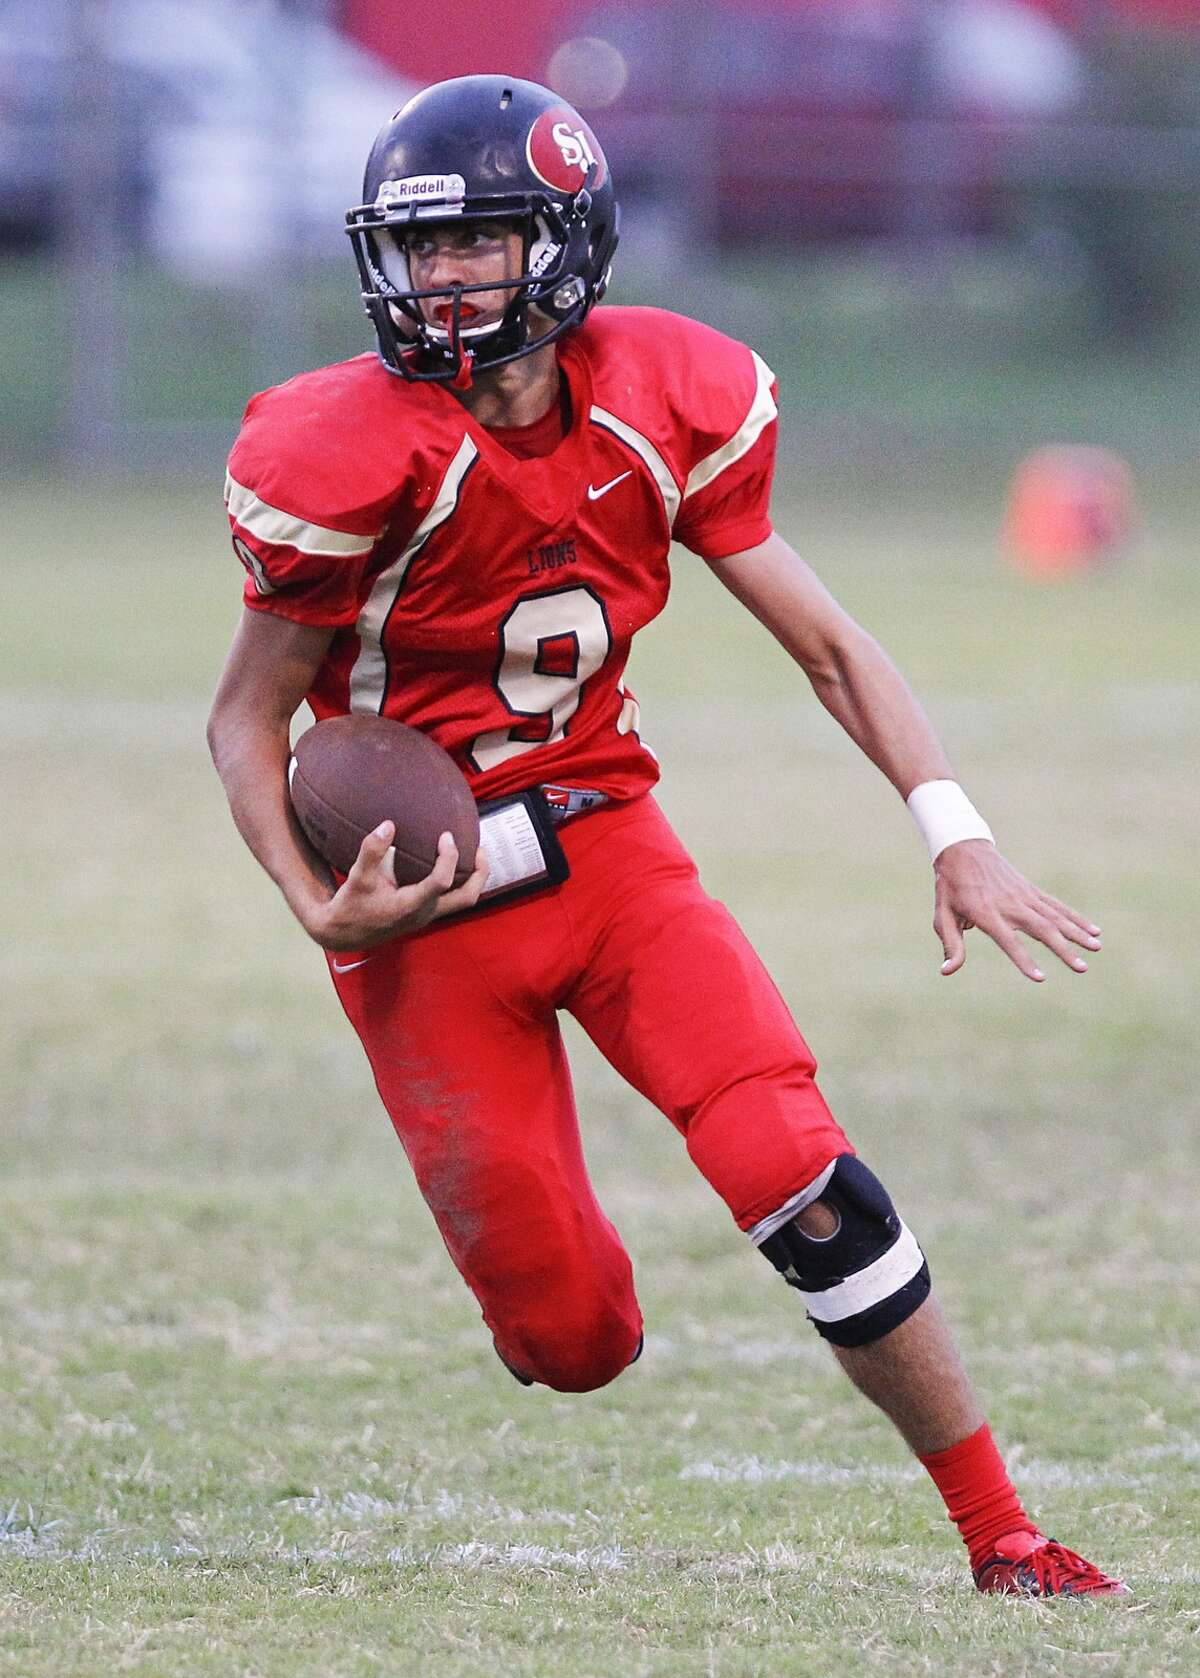 St. John XXIII quarterback Tristan Kuebler runs for the quarterback keep as the Lions faced off against Danbury in a non-district game at St. John XXIII College Prep in Katy on September 12, 2014.